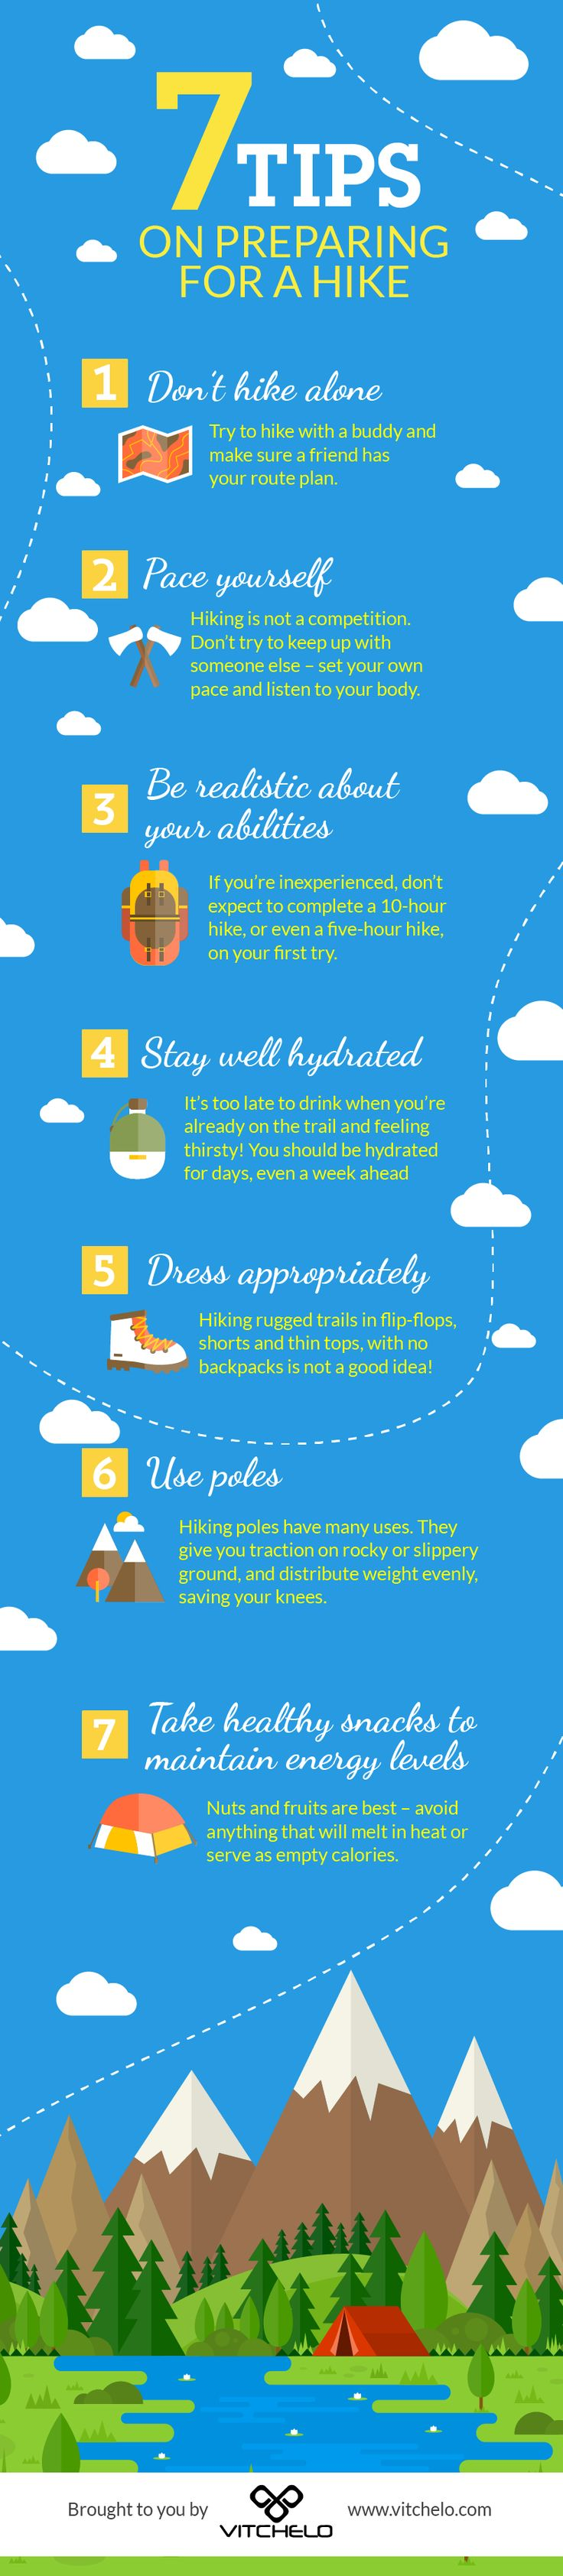 Hiking Safety Tips: How To Prepare, What To Wear and What To Bring http://vitchelo.com/hiking/hiking-safety-tips/?utm_campaign=coschedule&utm_source=pinterest&utm_medium=VITCHELO%C2%AE%20%7C%20Outdoor%20Gear&utm_content=Hiking%20Safety%20Tips%3A%20How%20To%20Prepare%2C%20What%20To%20Wear%20and%20What%20To%20Bring